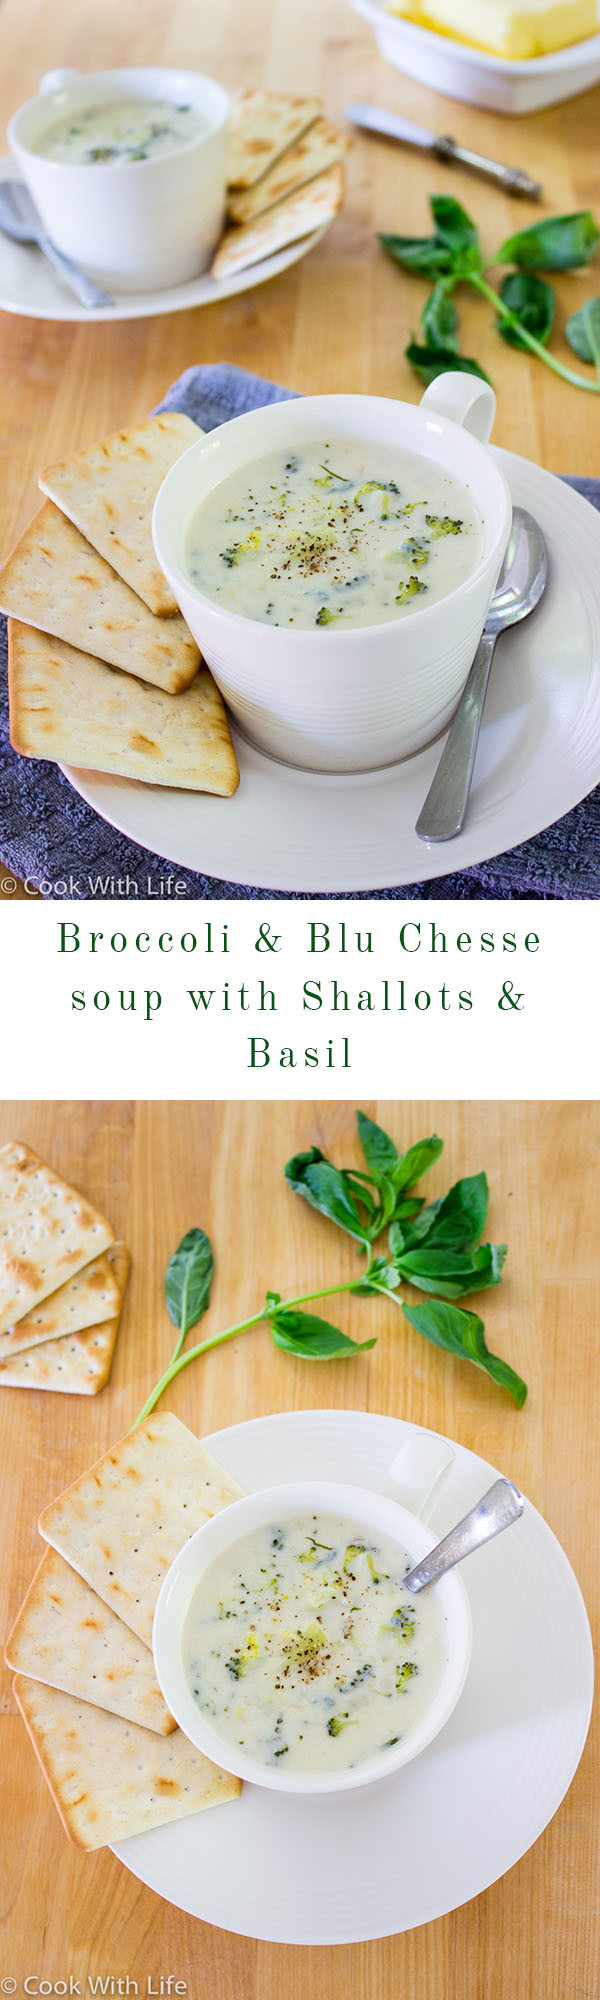 Broccoli Blu Cheese Soup Diptypch